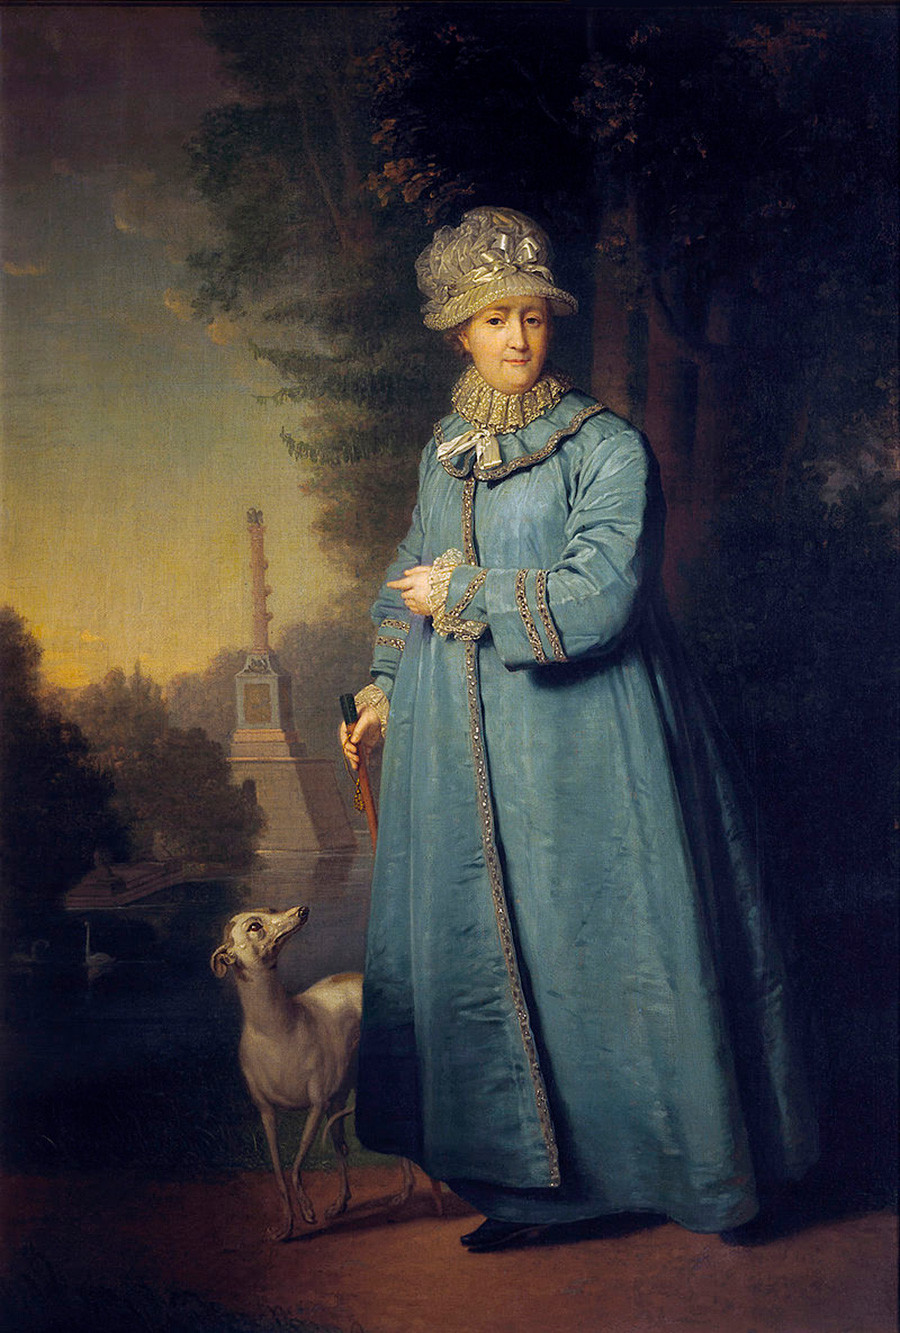 'Catherine the Great taking a walk in the park of Tsarskoye Selo.' Vladimir L.Borovikovsky. 1796.